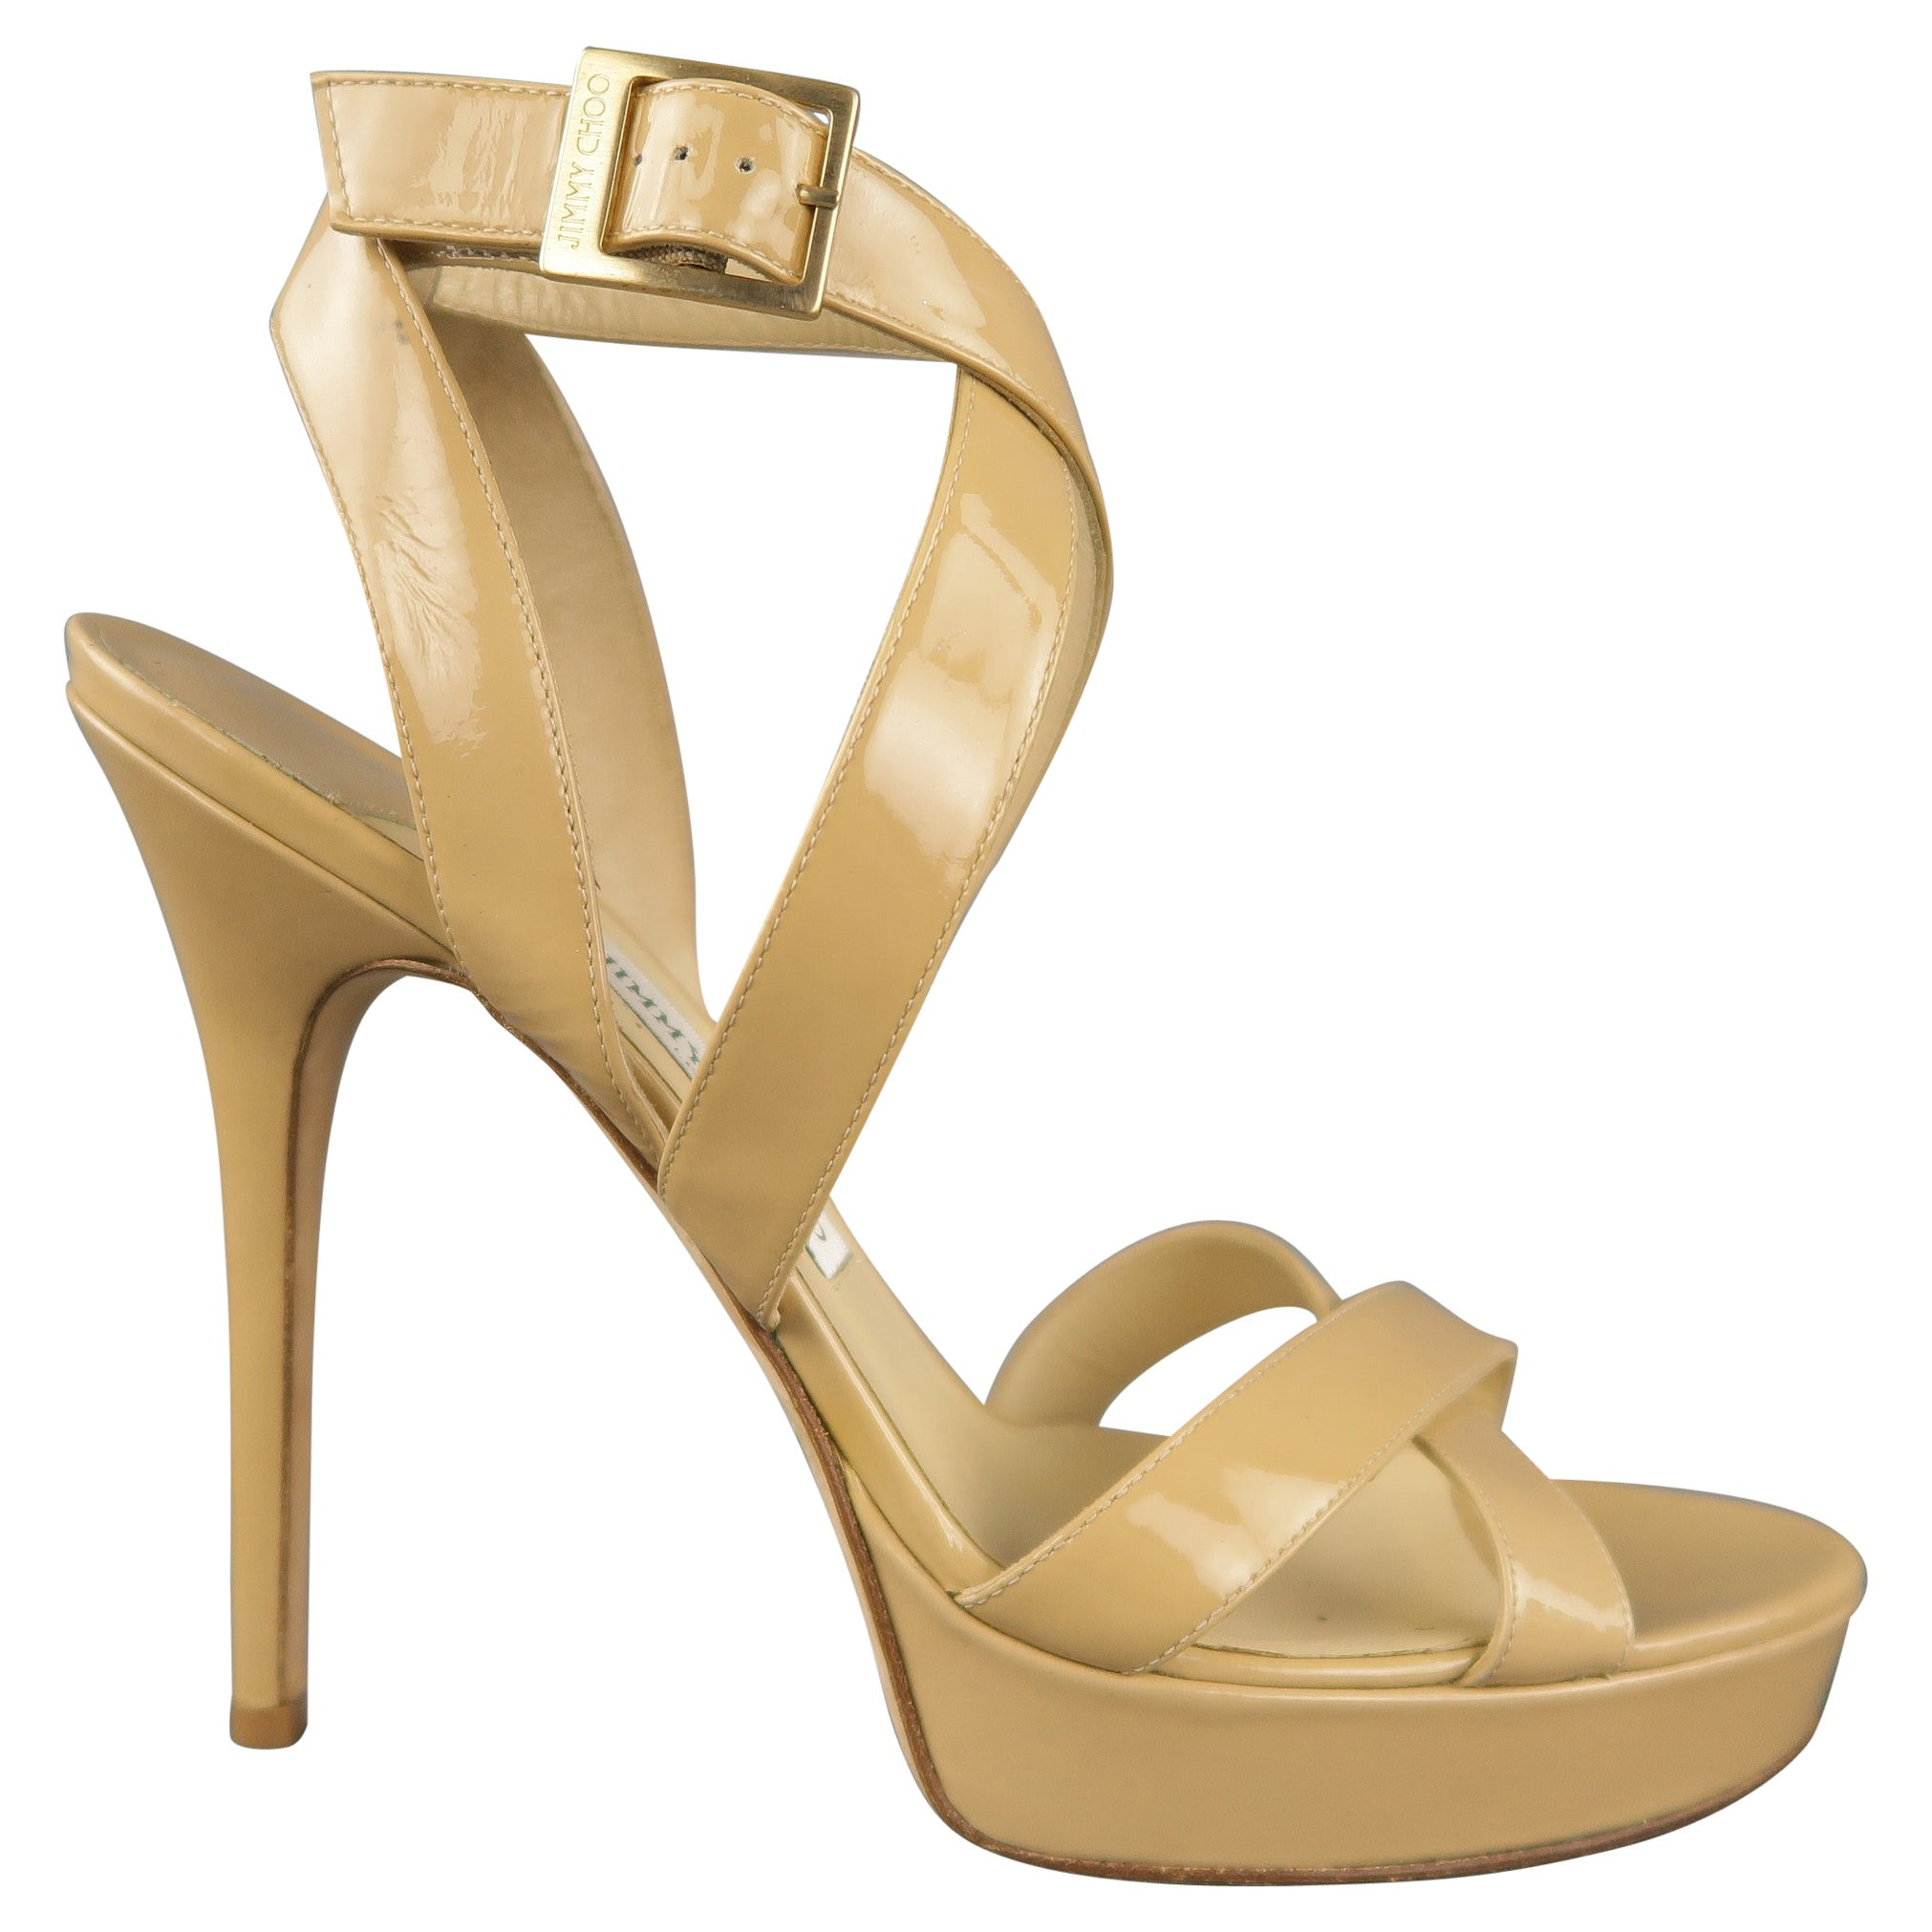 a46b7b8143 JIMMY CHOO Size 12 Beige Patent Leather Strappy Platform Sandals at 1stdibs